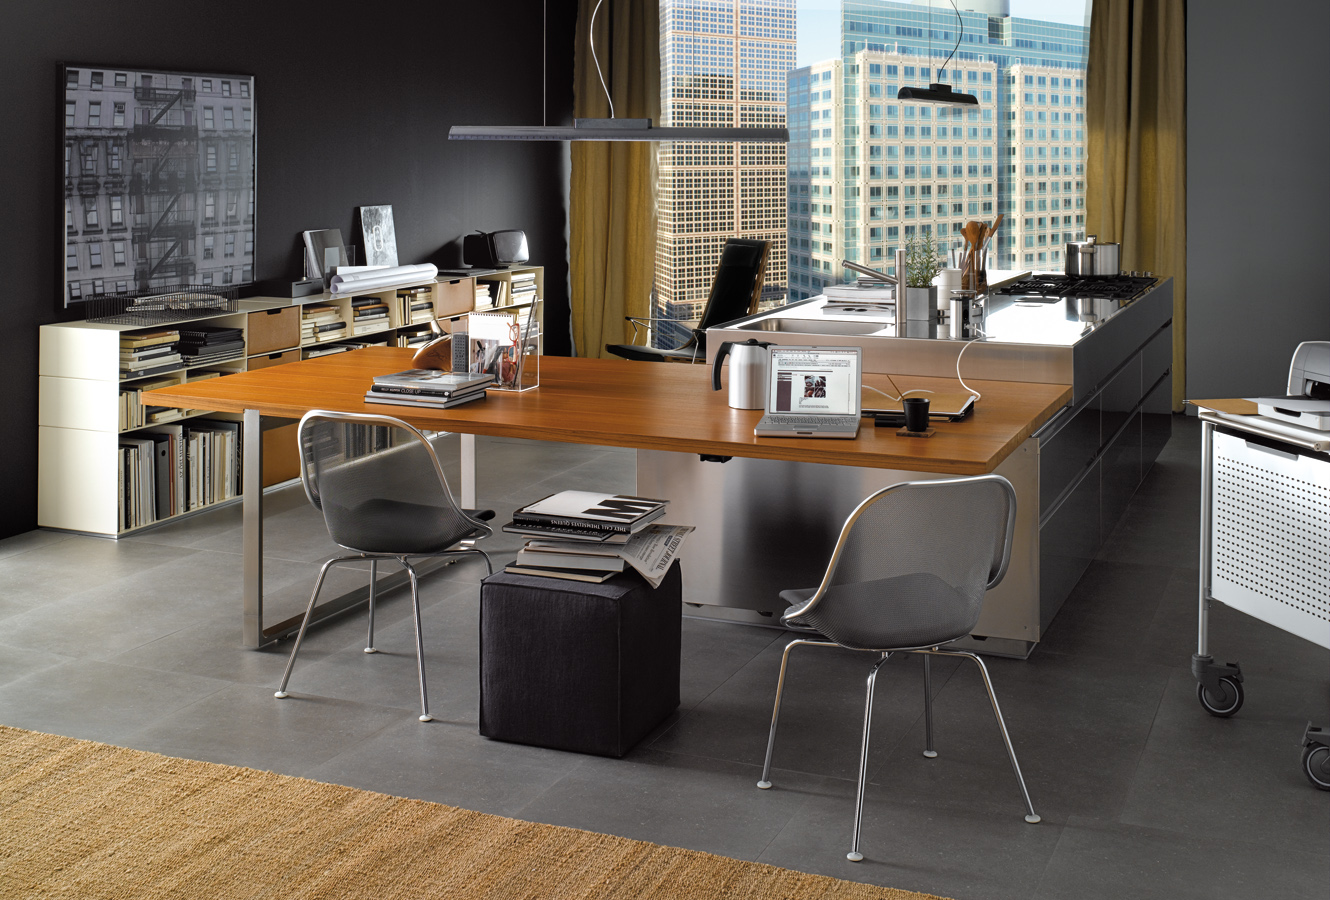 Modern italian kitchen design from arclinea - Design office room ...